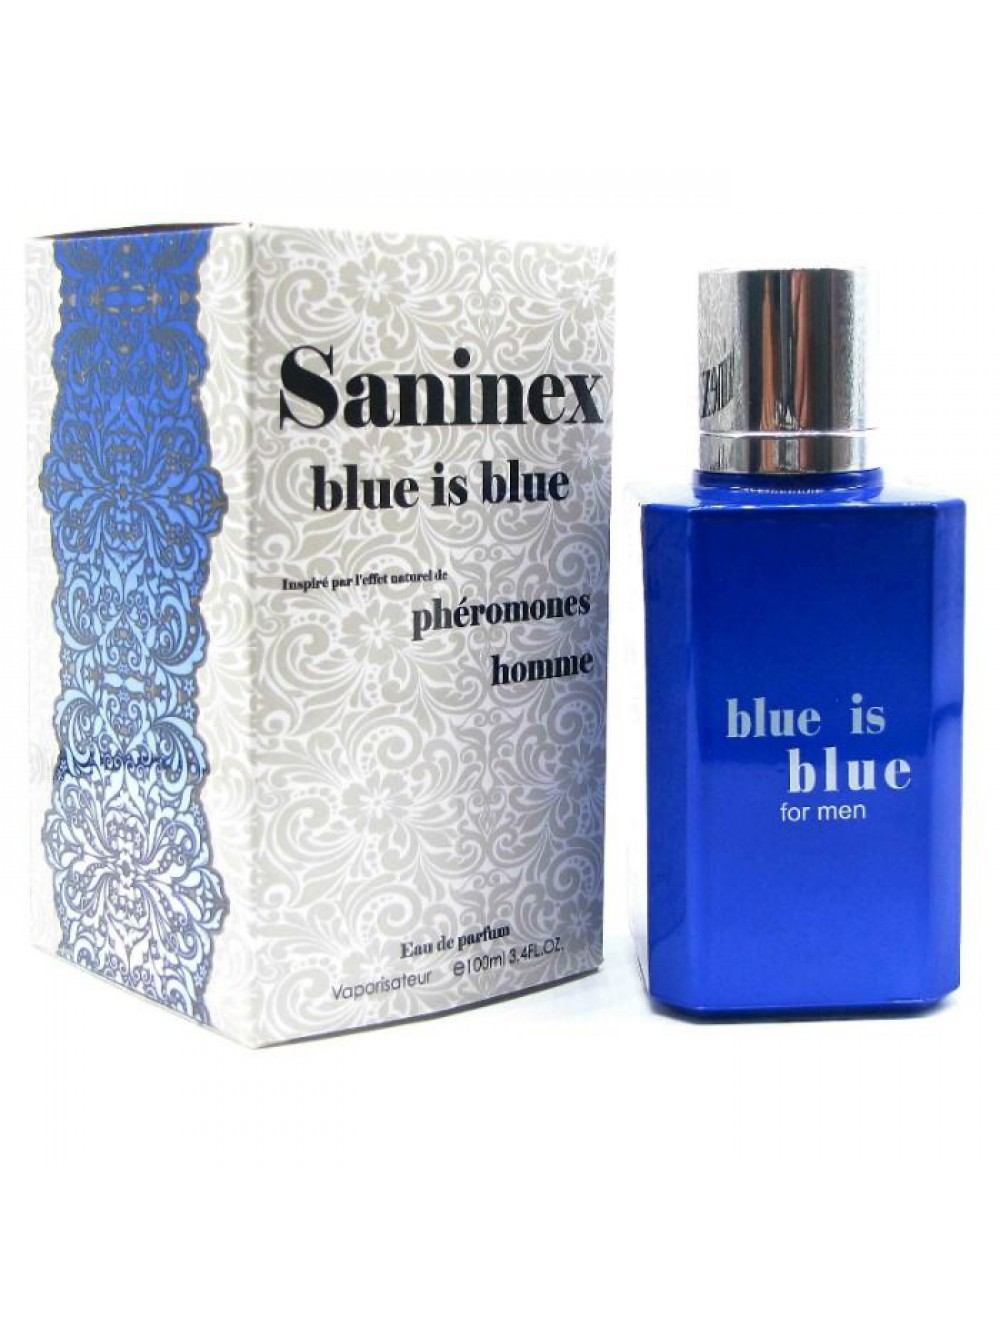 SANINEX SCENT WITH PHEROMONES FOR MEN BLUE IS BLUE 8984686901979